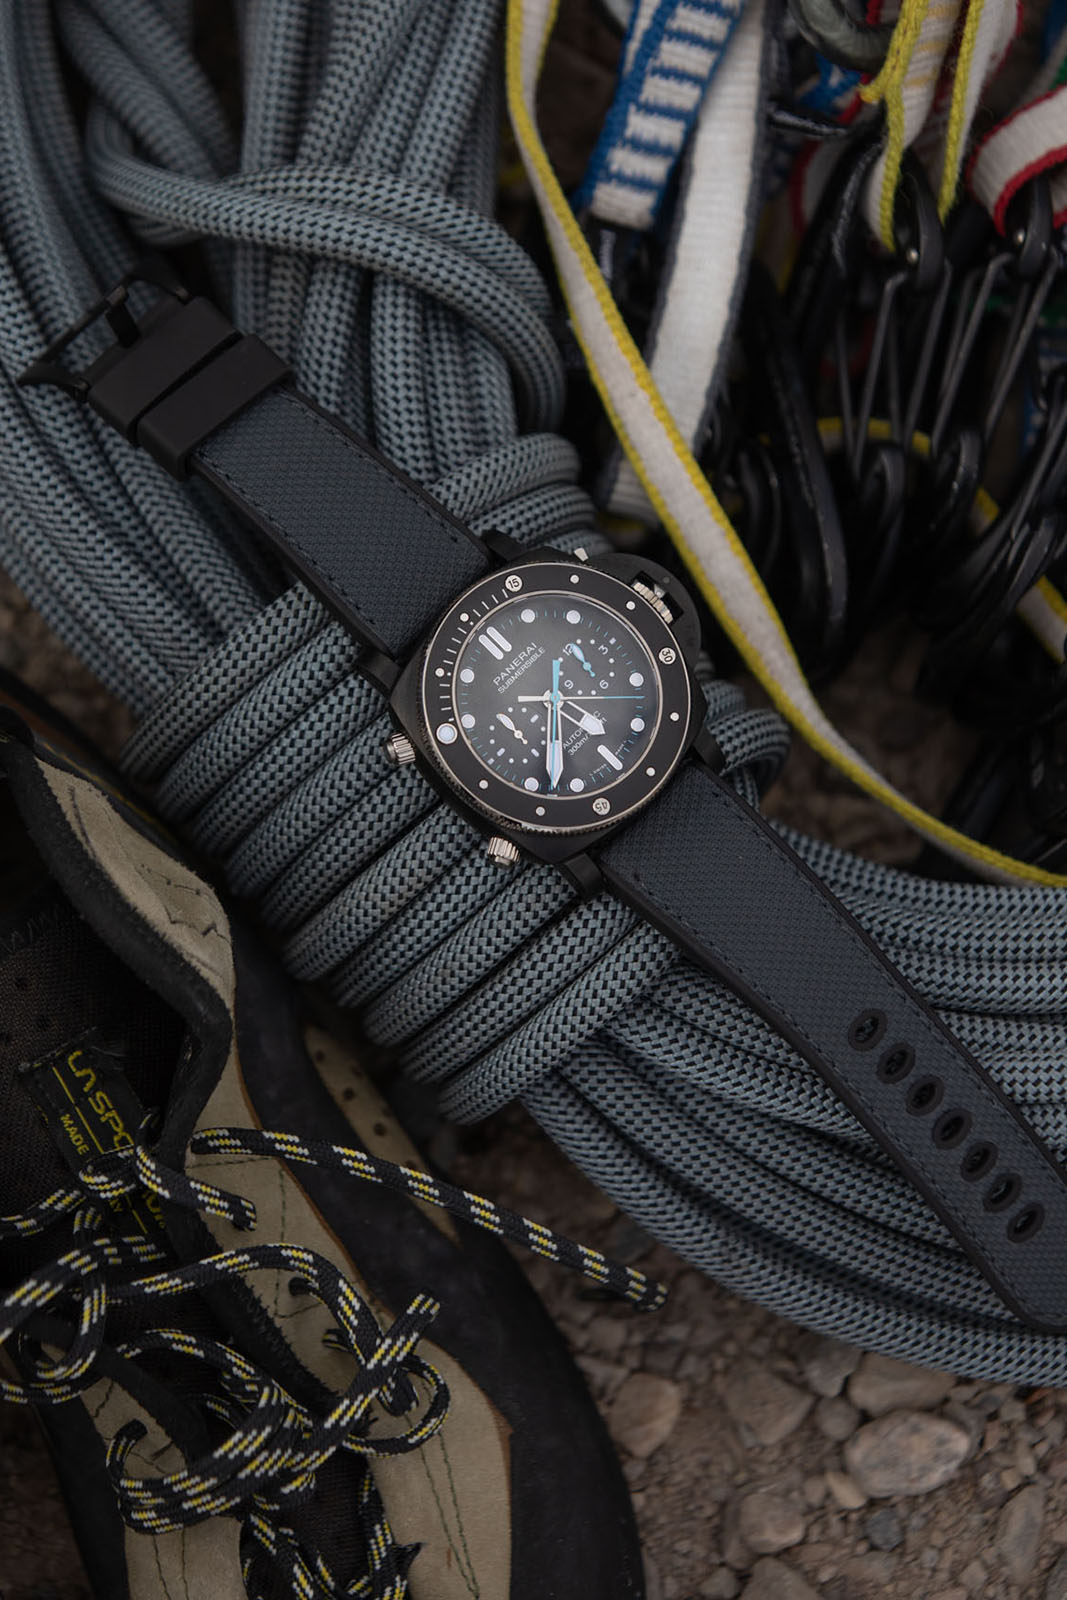 Panerai Submersible Chrono Flyback Jimmy Chin Editions